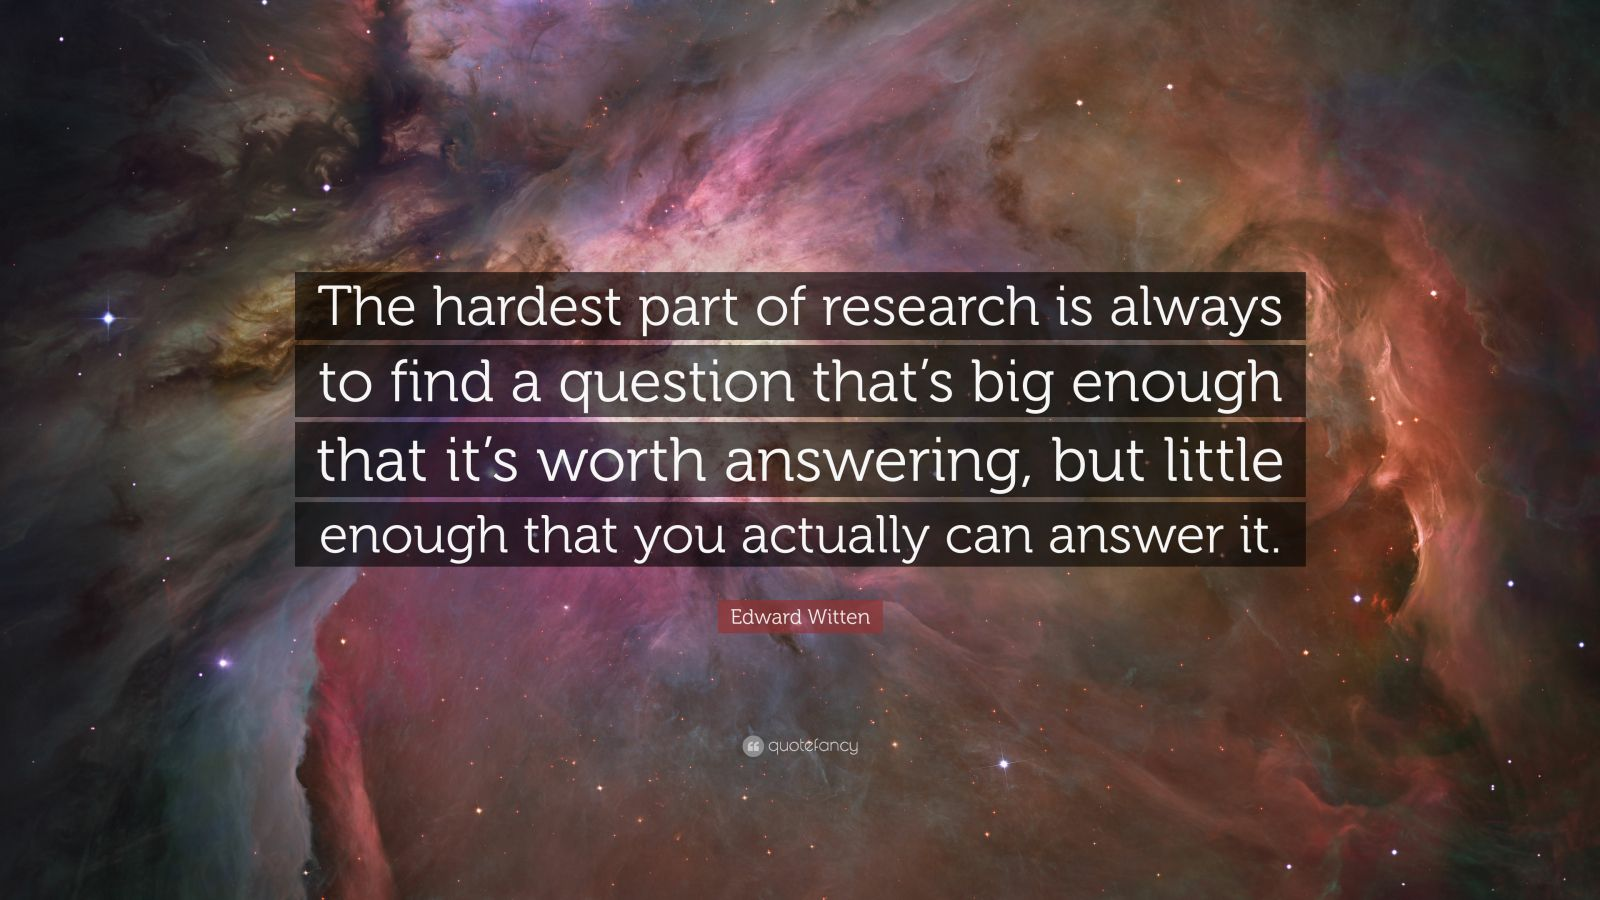 """Edward Witten Quote: """"The hardest part of research is always to find a question that's big enough that it's worth answering, but little enough that you actually can answer it."""""""